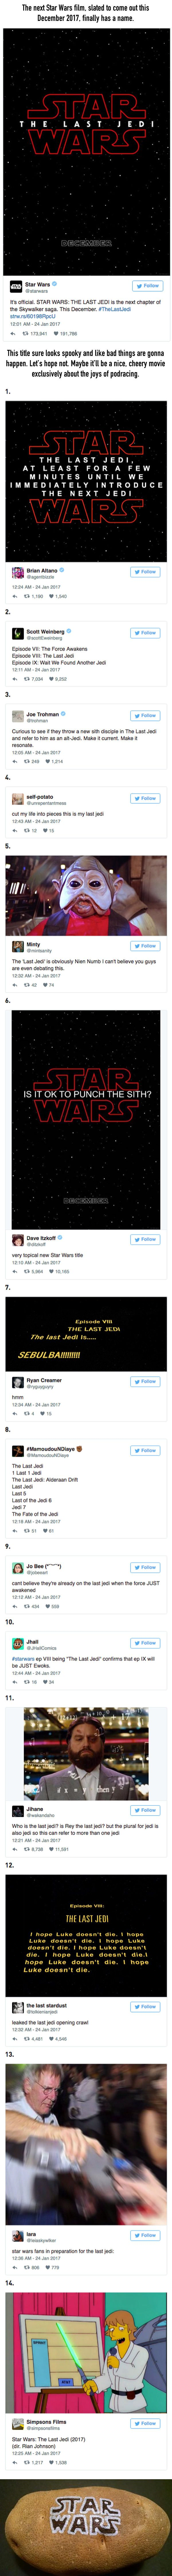 Best Star Wars Images On Pinterest Starwars Jokes And Most - 14 hilarious pictures of sad batman